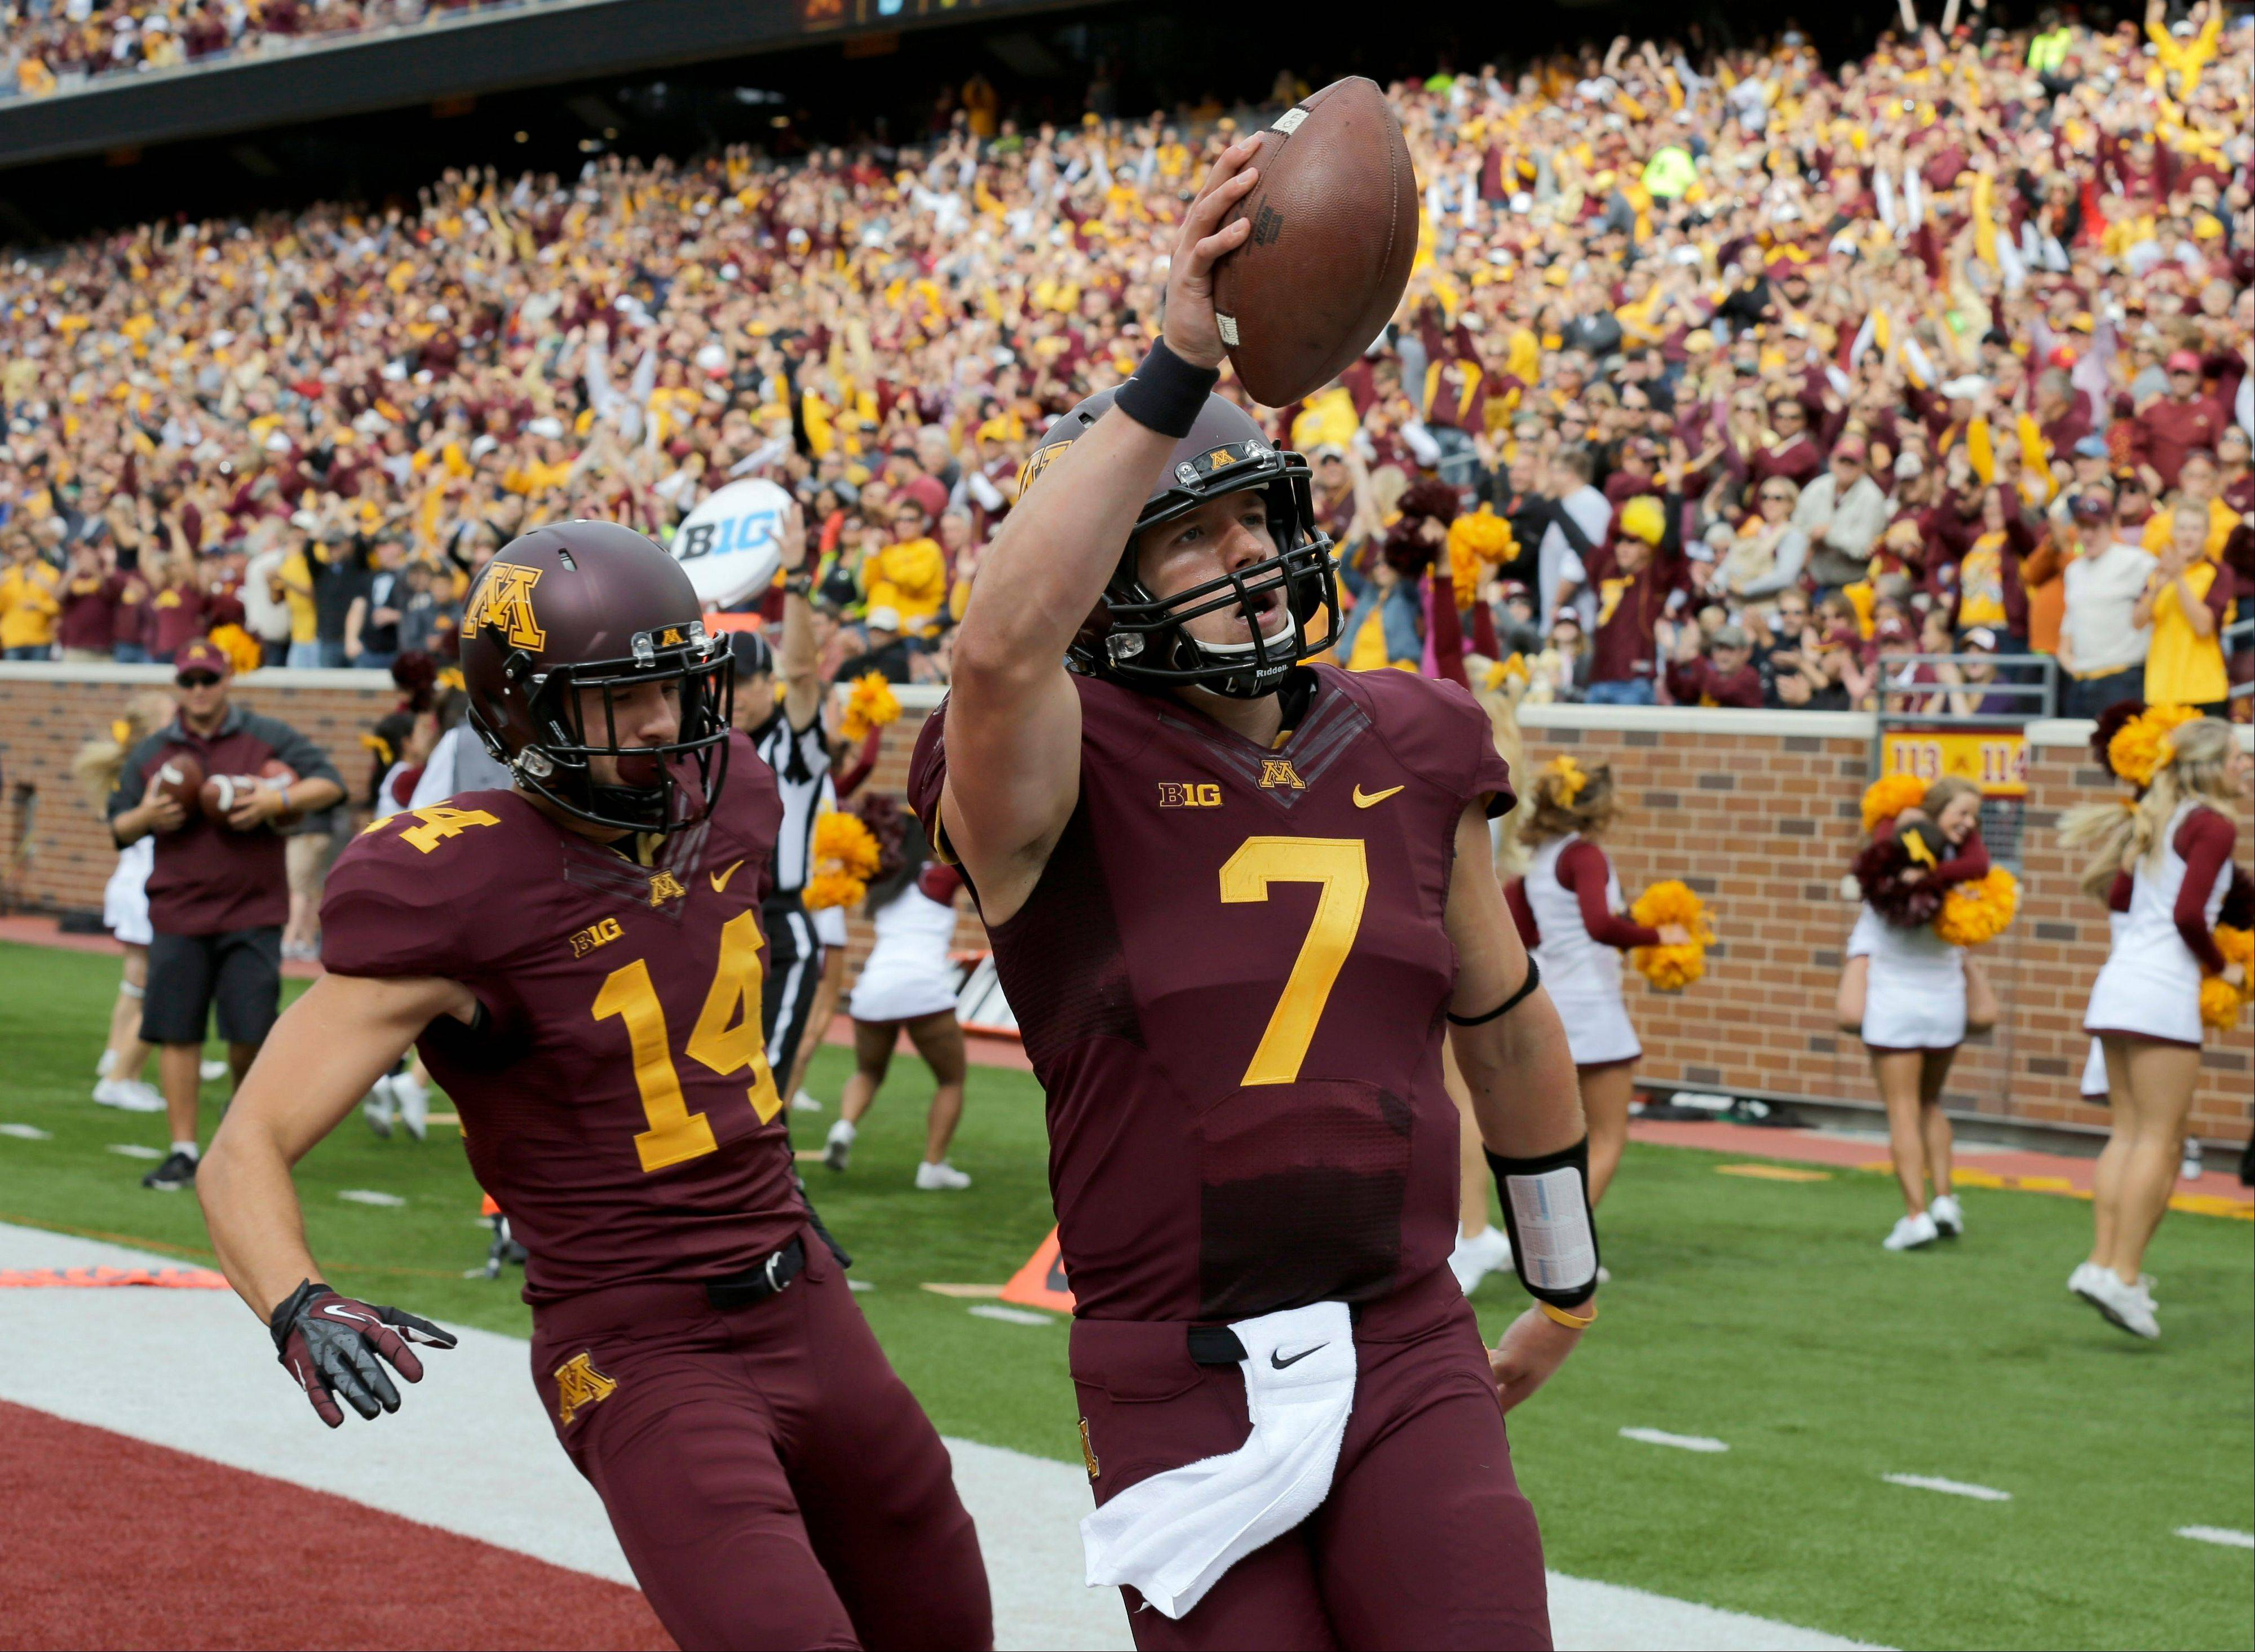 Minnesota quarterback Mitch Leidner celebrates his touchdown with wide receiver Isaac Fruechte (14) last Saturday at home against San Jose State. Minnesota won 43-24.